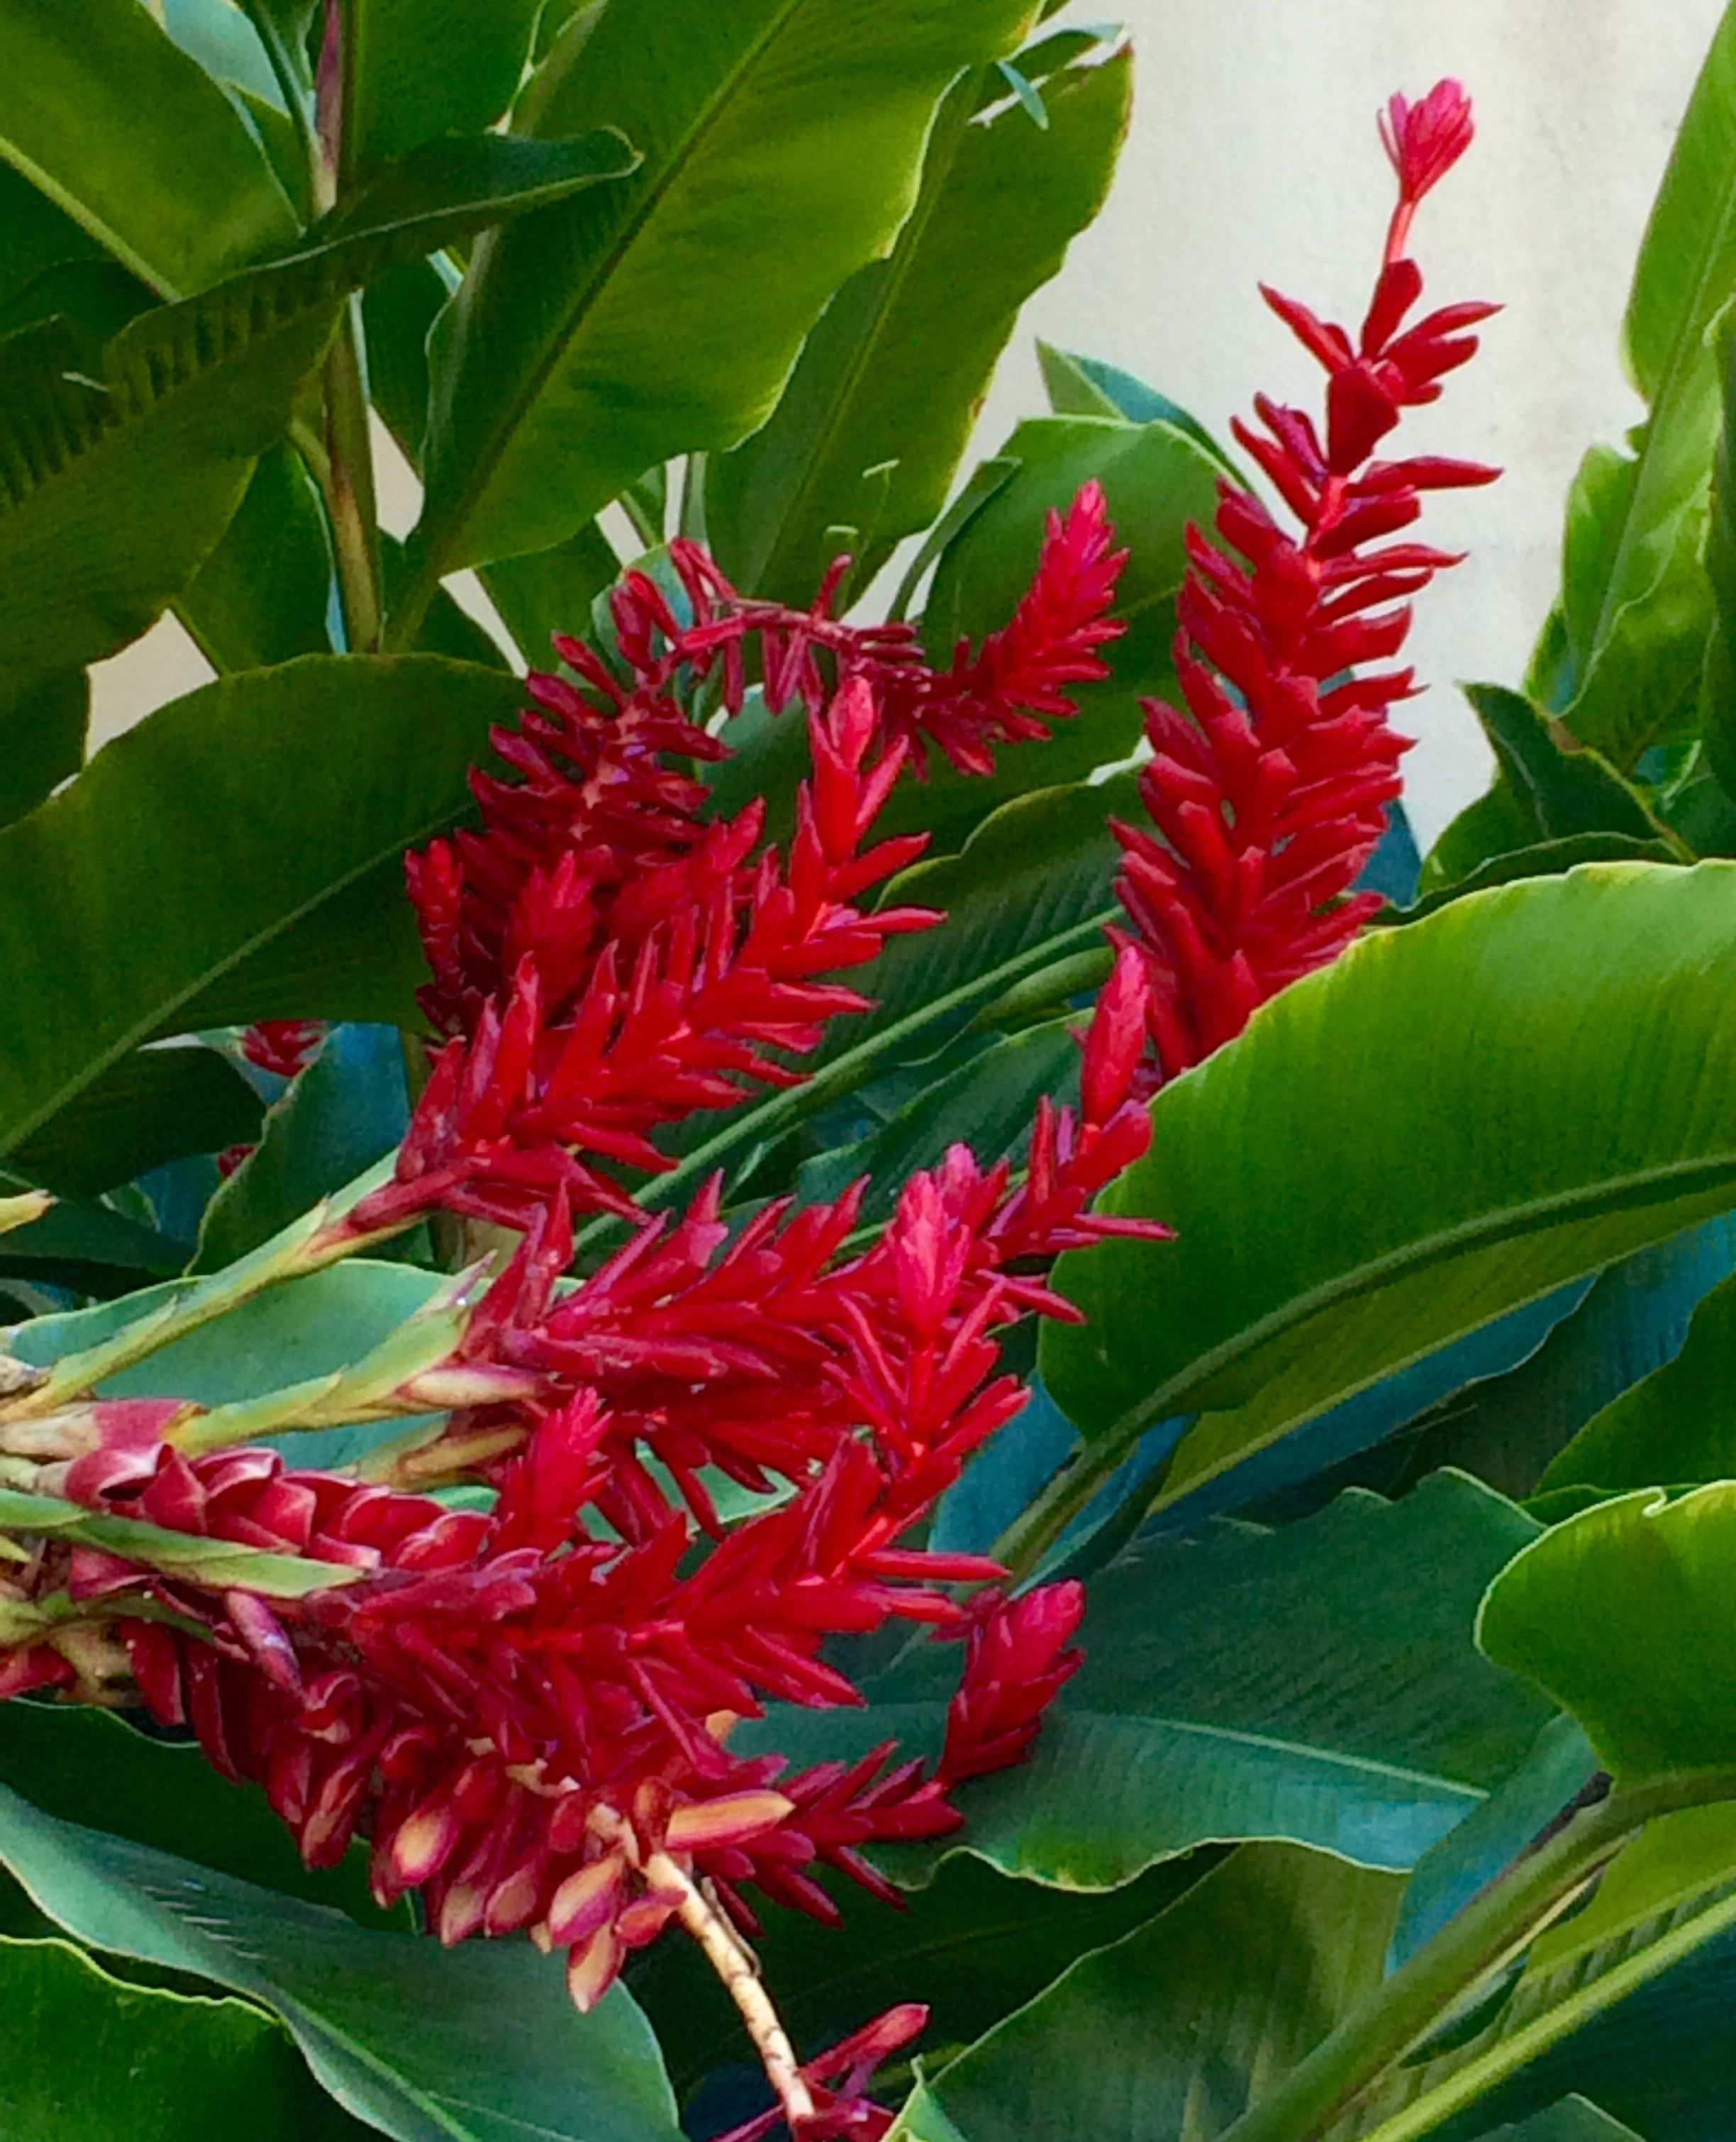 Red Ginger Tropical Flowers Flowers Online Tropical Flowers Flowers